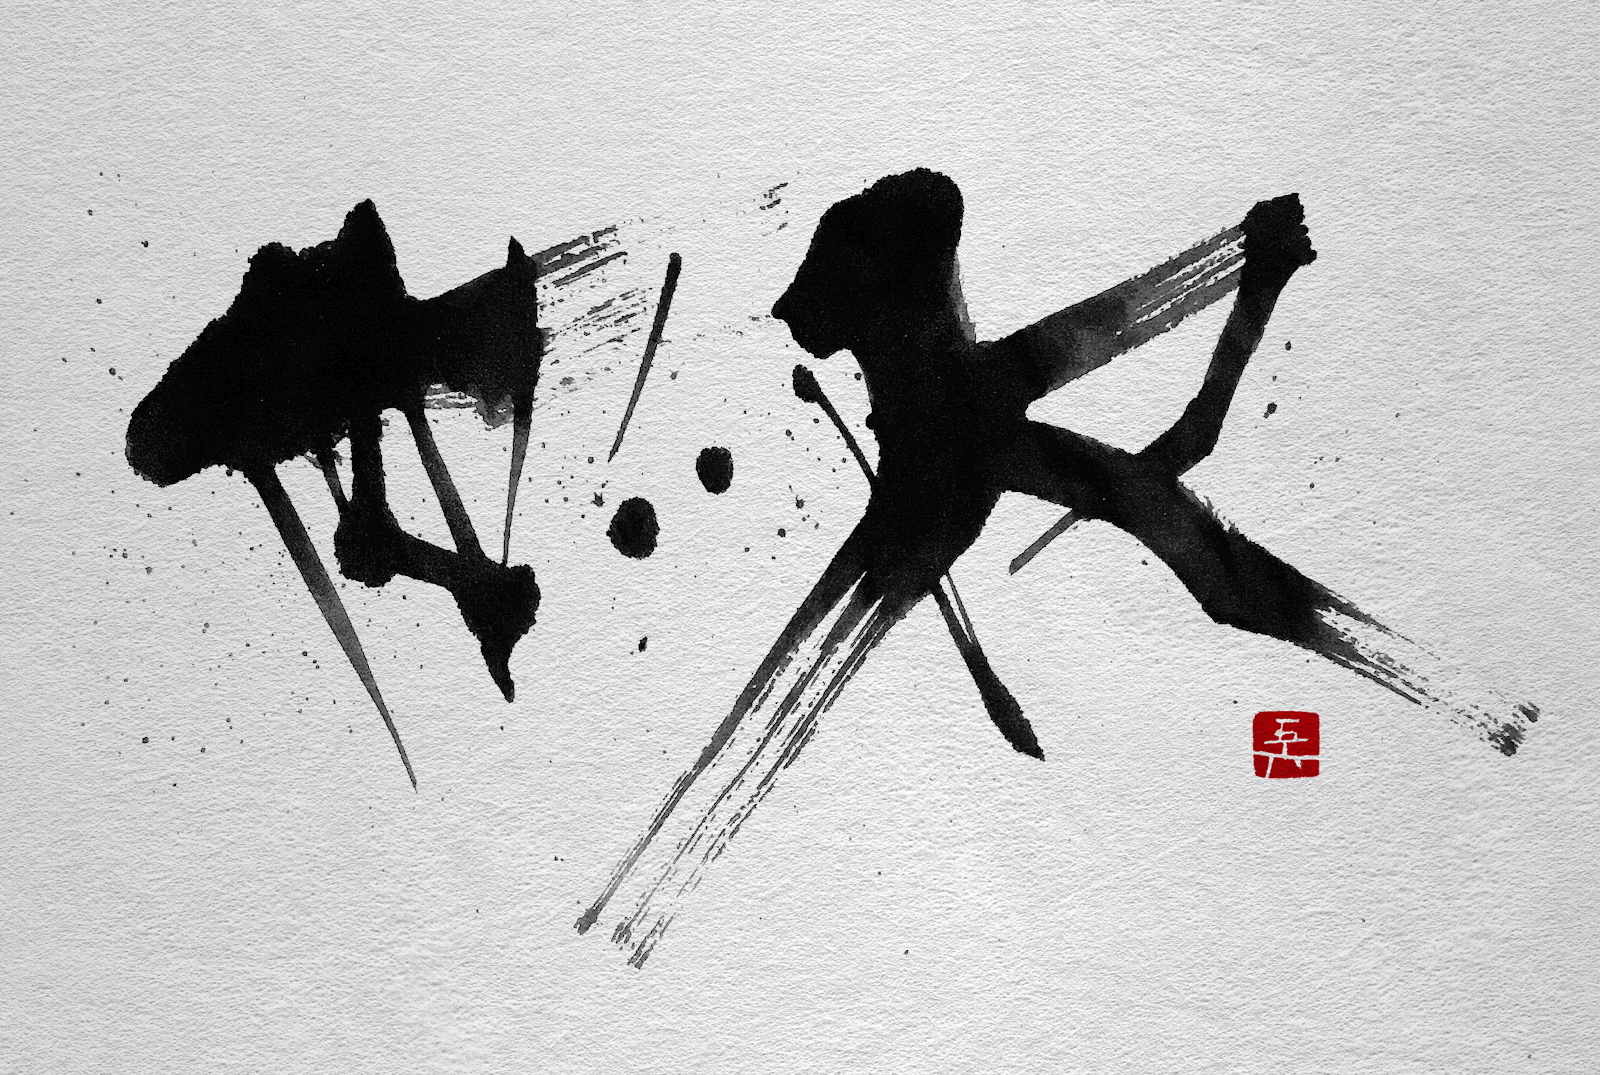 無双 musou incomparable 書道作品 japaneseart japanesecalligraphy